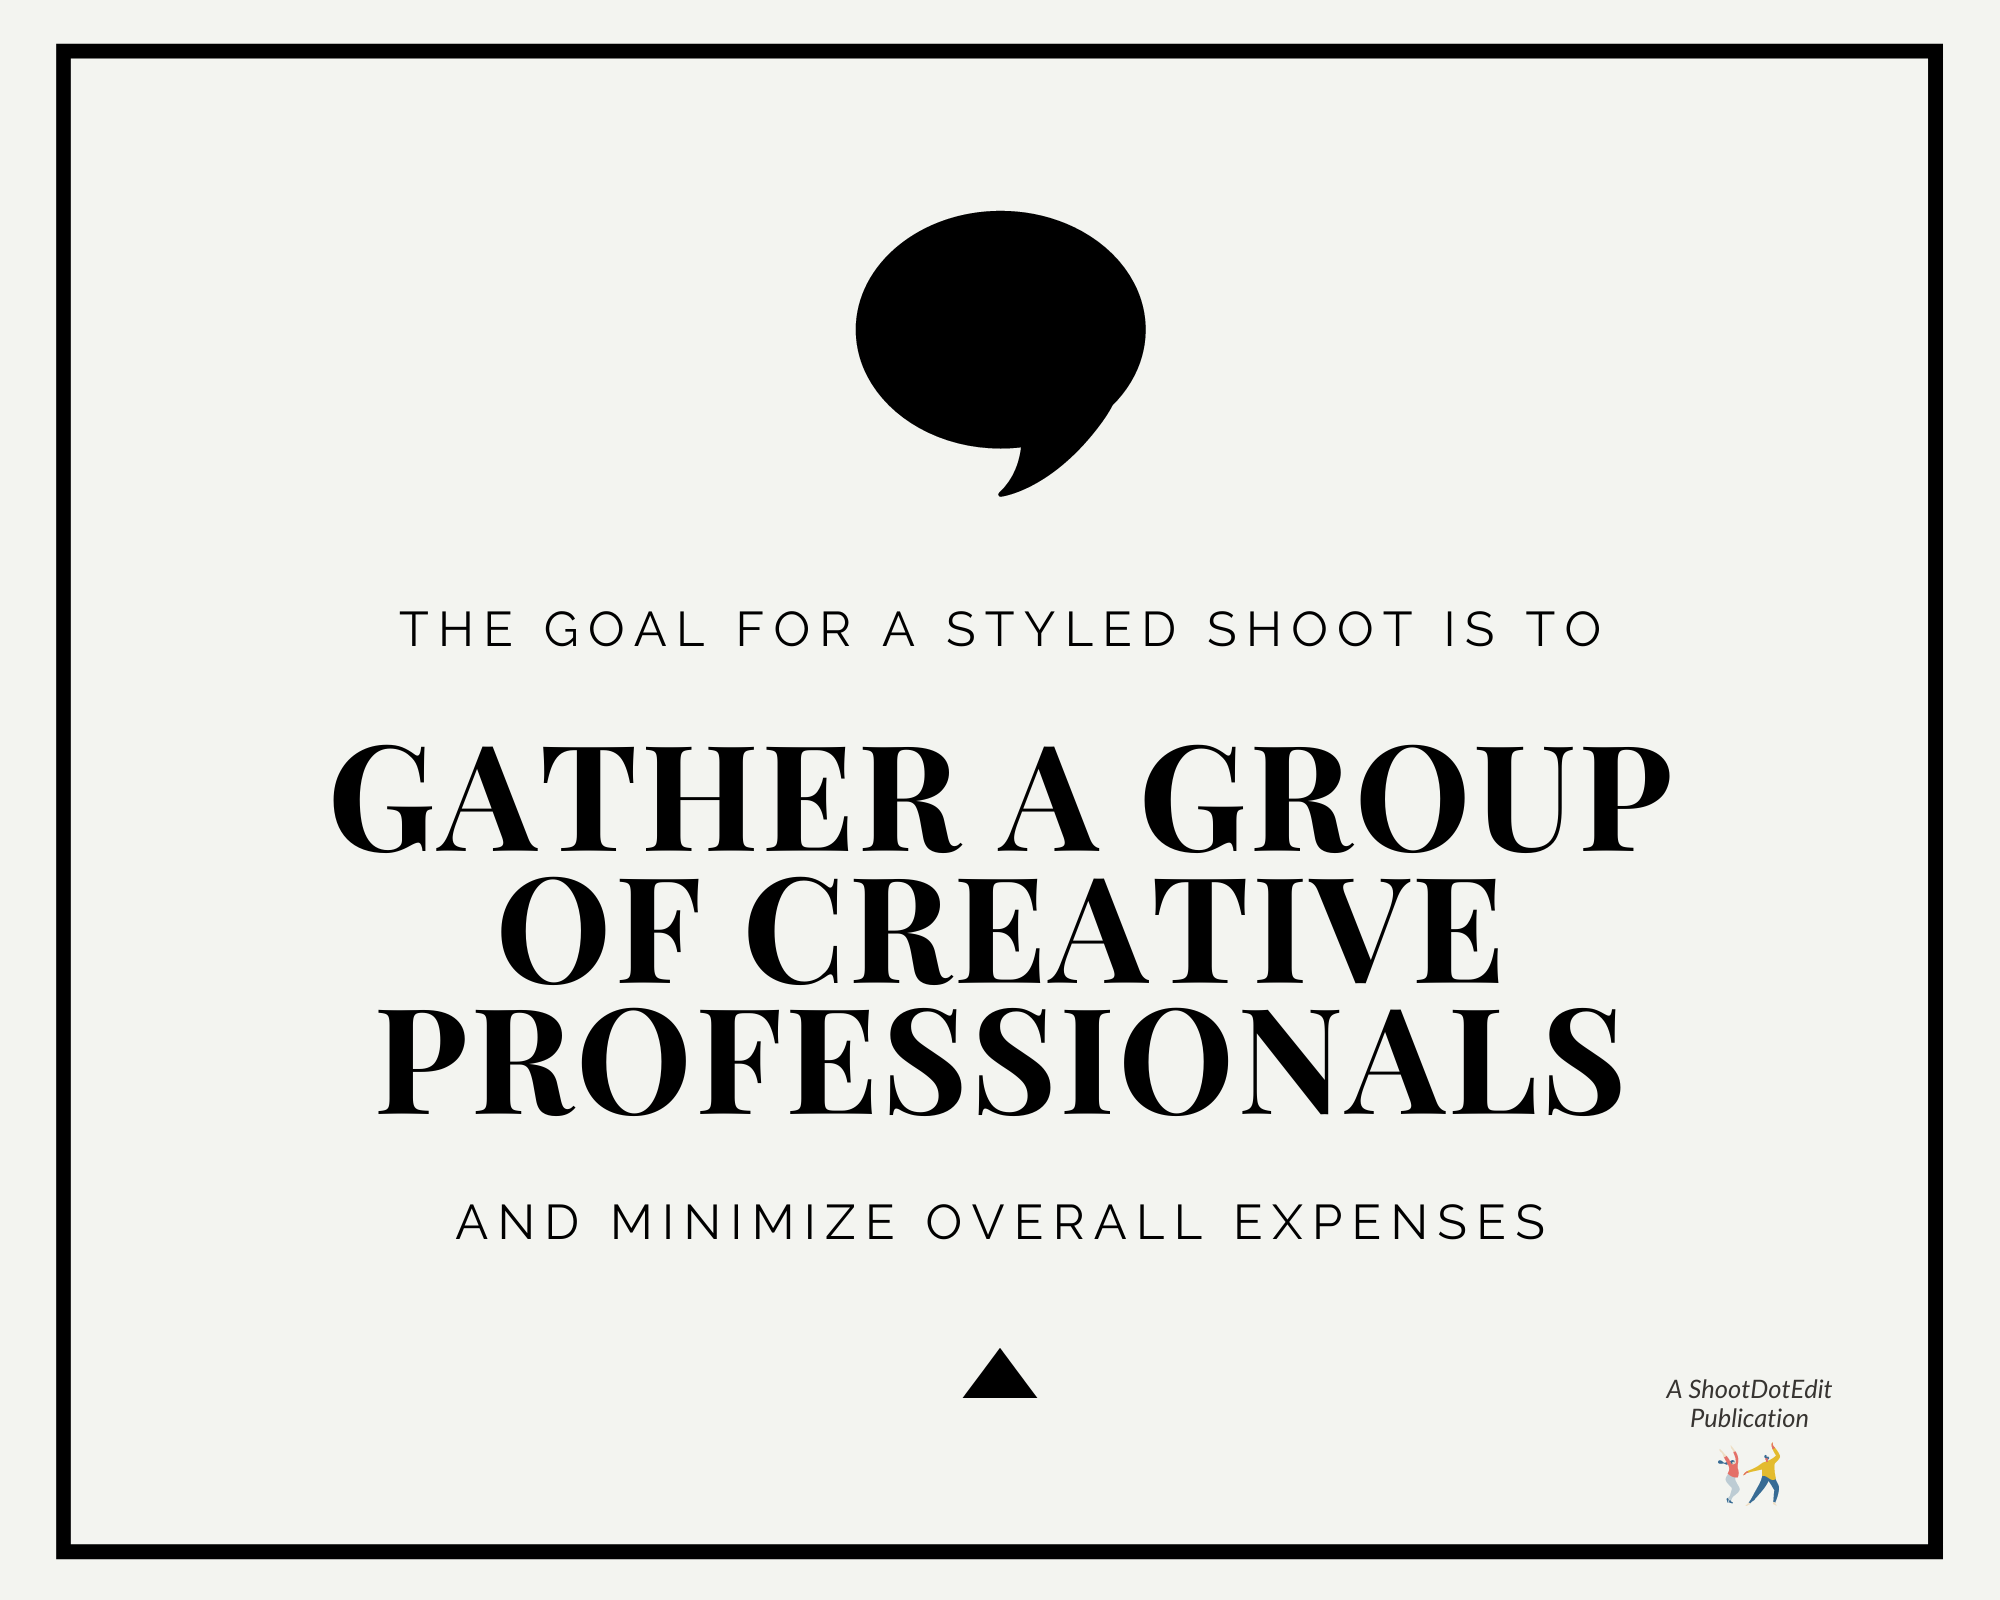 Graphic stating - the goal for a styled shoot is to gather a group of creative professionals and minimize overall expenses